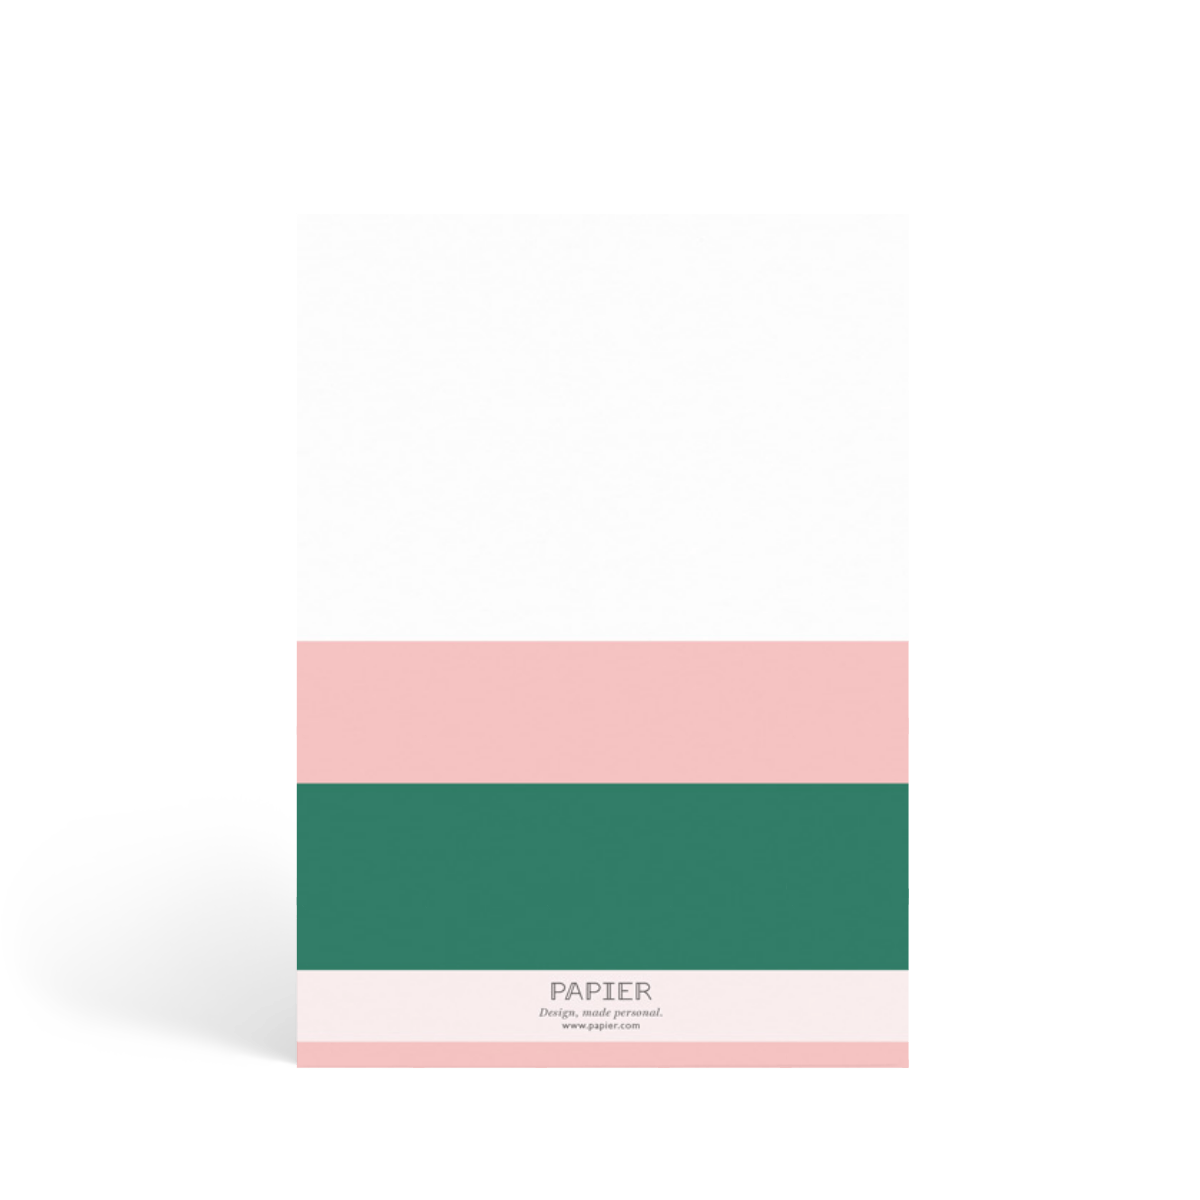 Https%3a%2f%2fwww.papier.com%2fproduct image%2f90155%2f5%2fstriped colourblock pink green 22548 back 1569936126.png?ixlib=rb 1.1